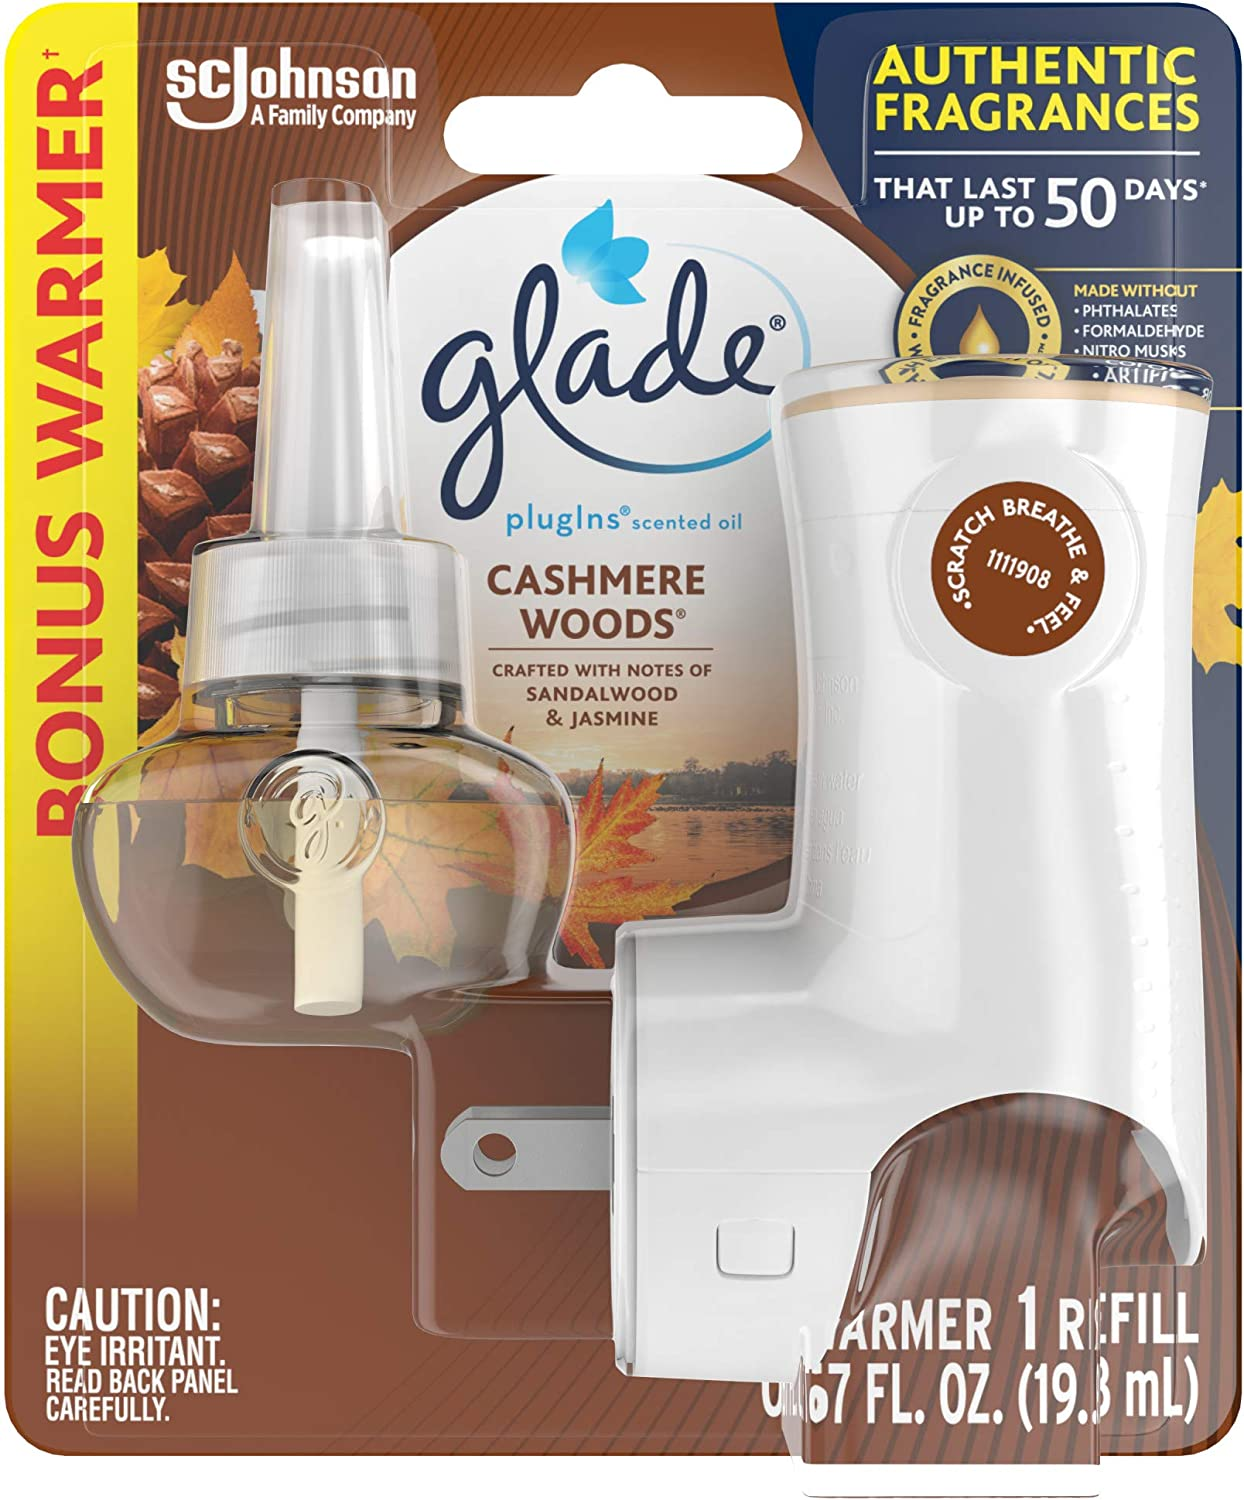 Glade PlugIns Refills Air Freshener Starter Kit, Scented Oil for Home and Bathroom, Cashmere Woods, 0.67 Fl Oz, 1 Warmer + 1 Refill